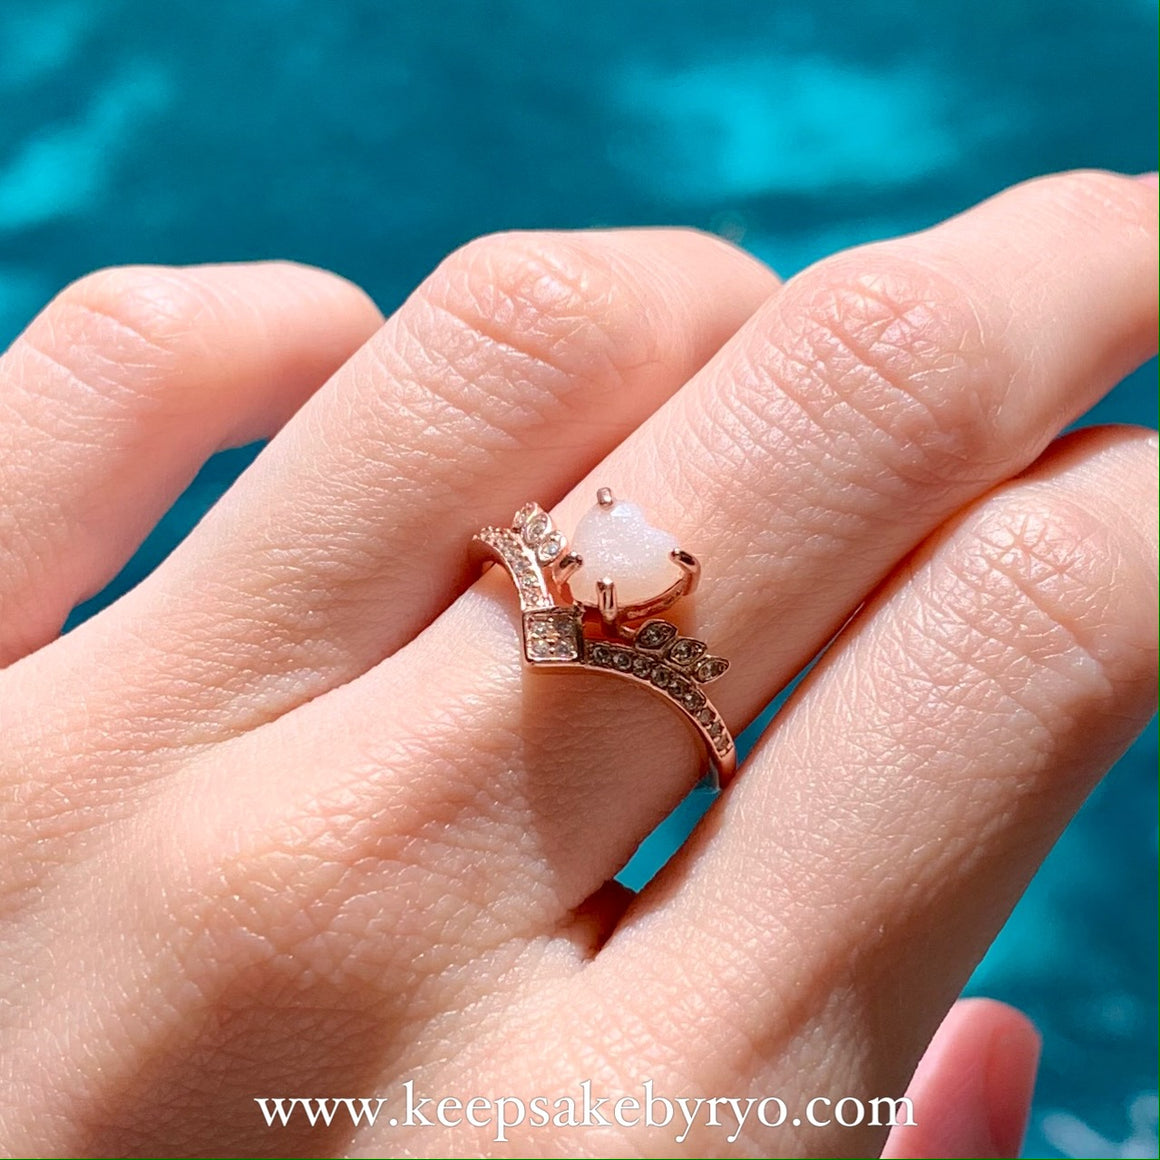 SOLITAIRE 18K: KYRA BREASTMILK HEART RING